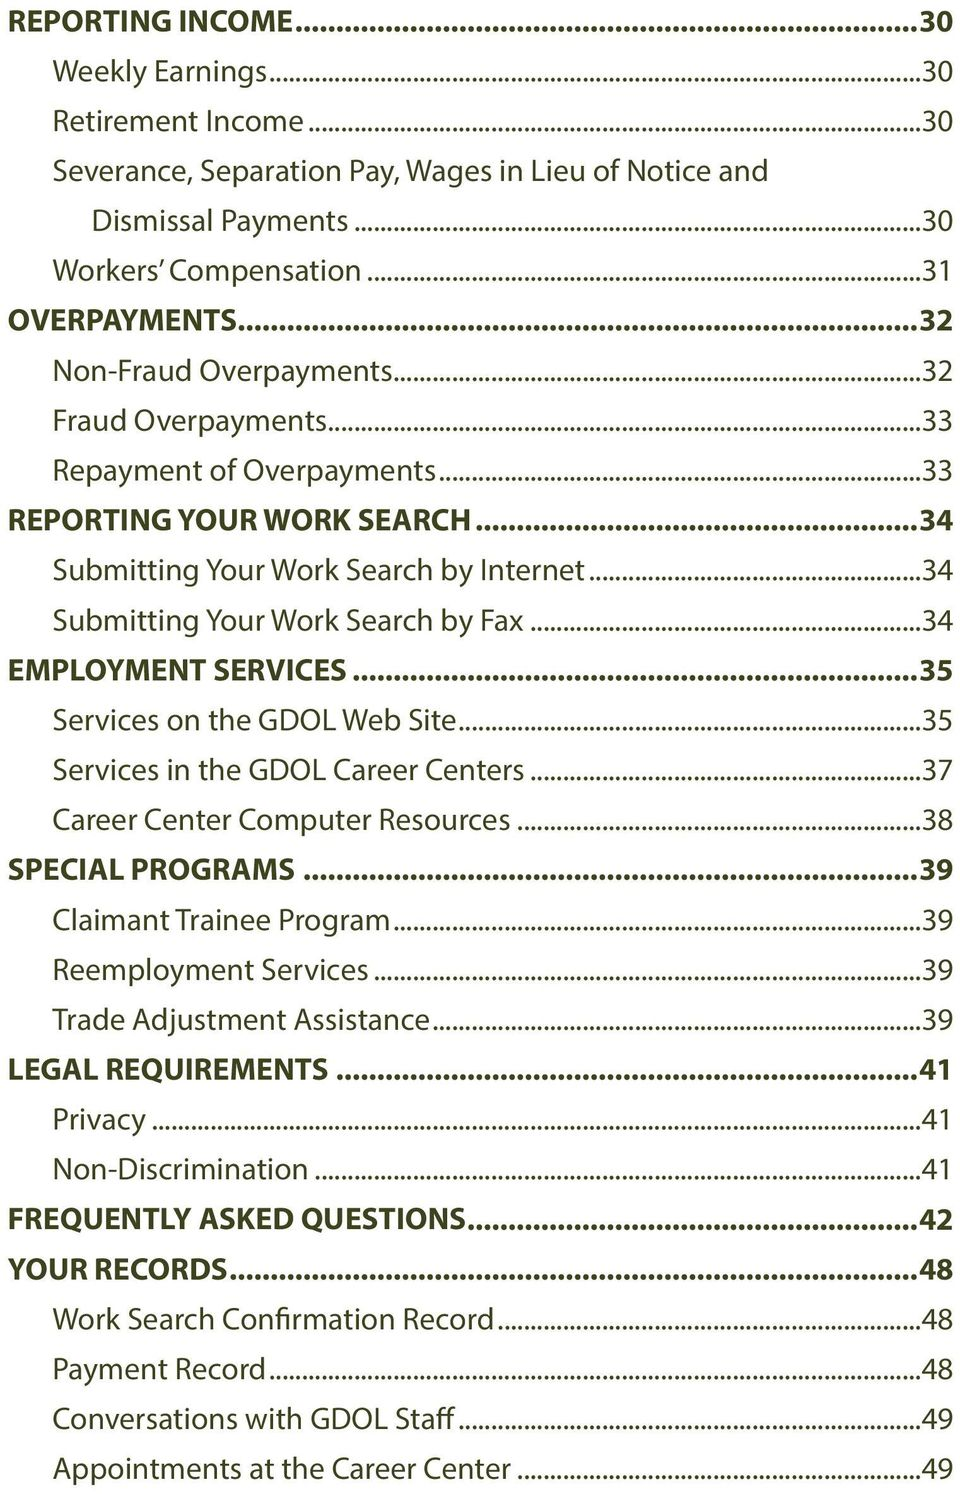 ..34 EMPLOYMENT SERVICES...35 Services on the GDOL Web Site...35 Services in the GDOL Career Centers...37 Career Center Computer Resources...38 SPECIAL PROGRAMS...39 Claimant Trainee Program.